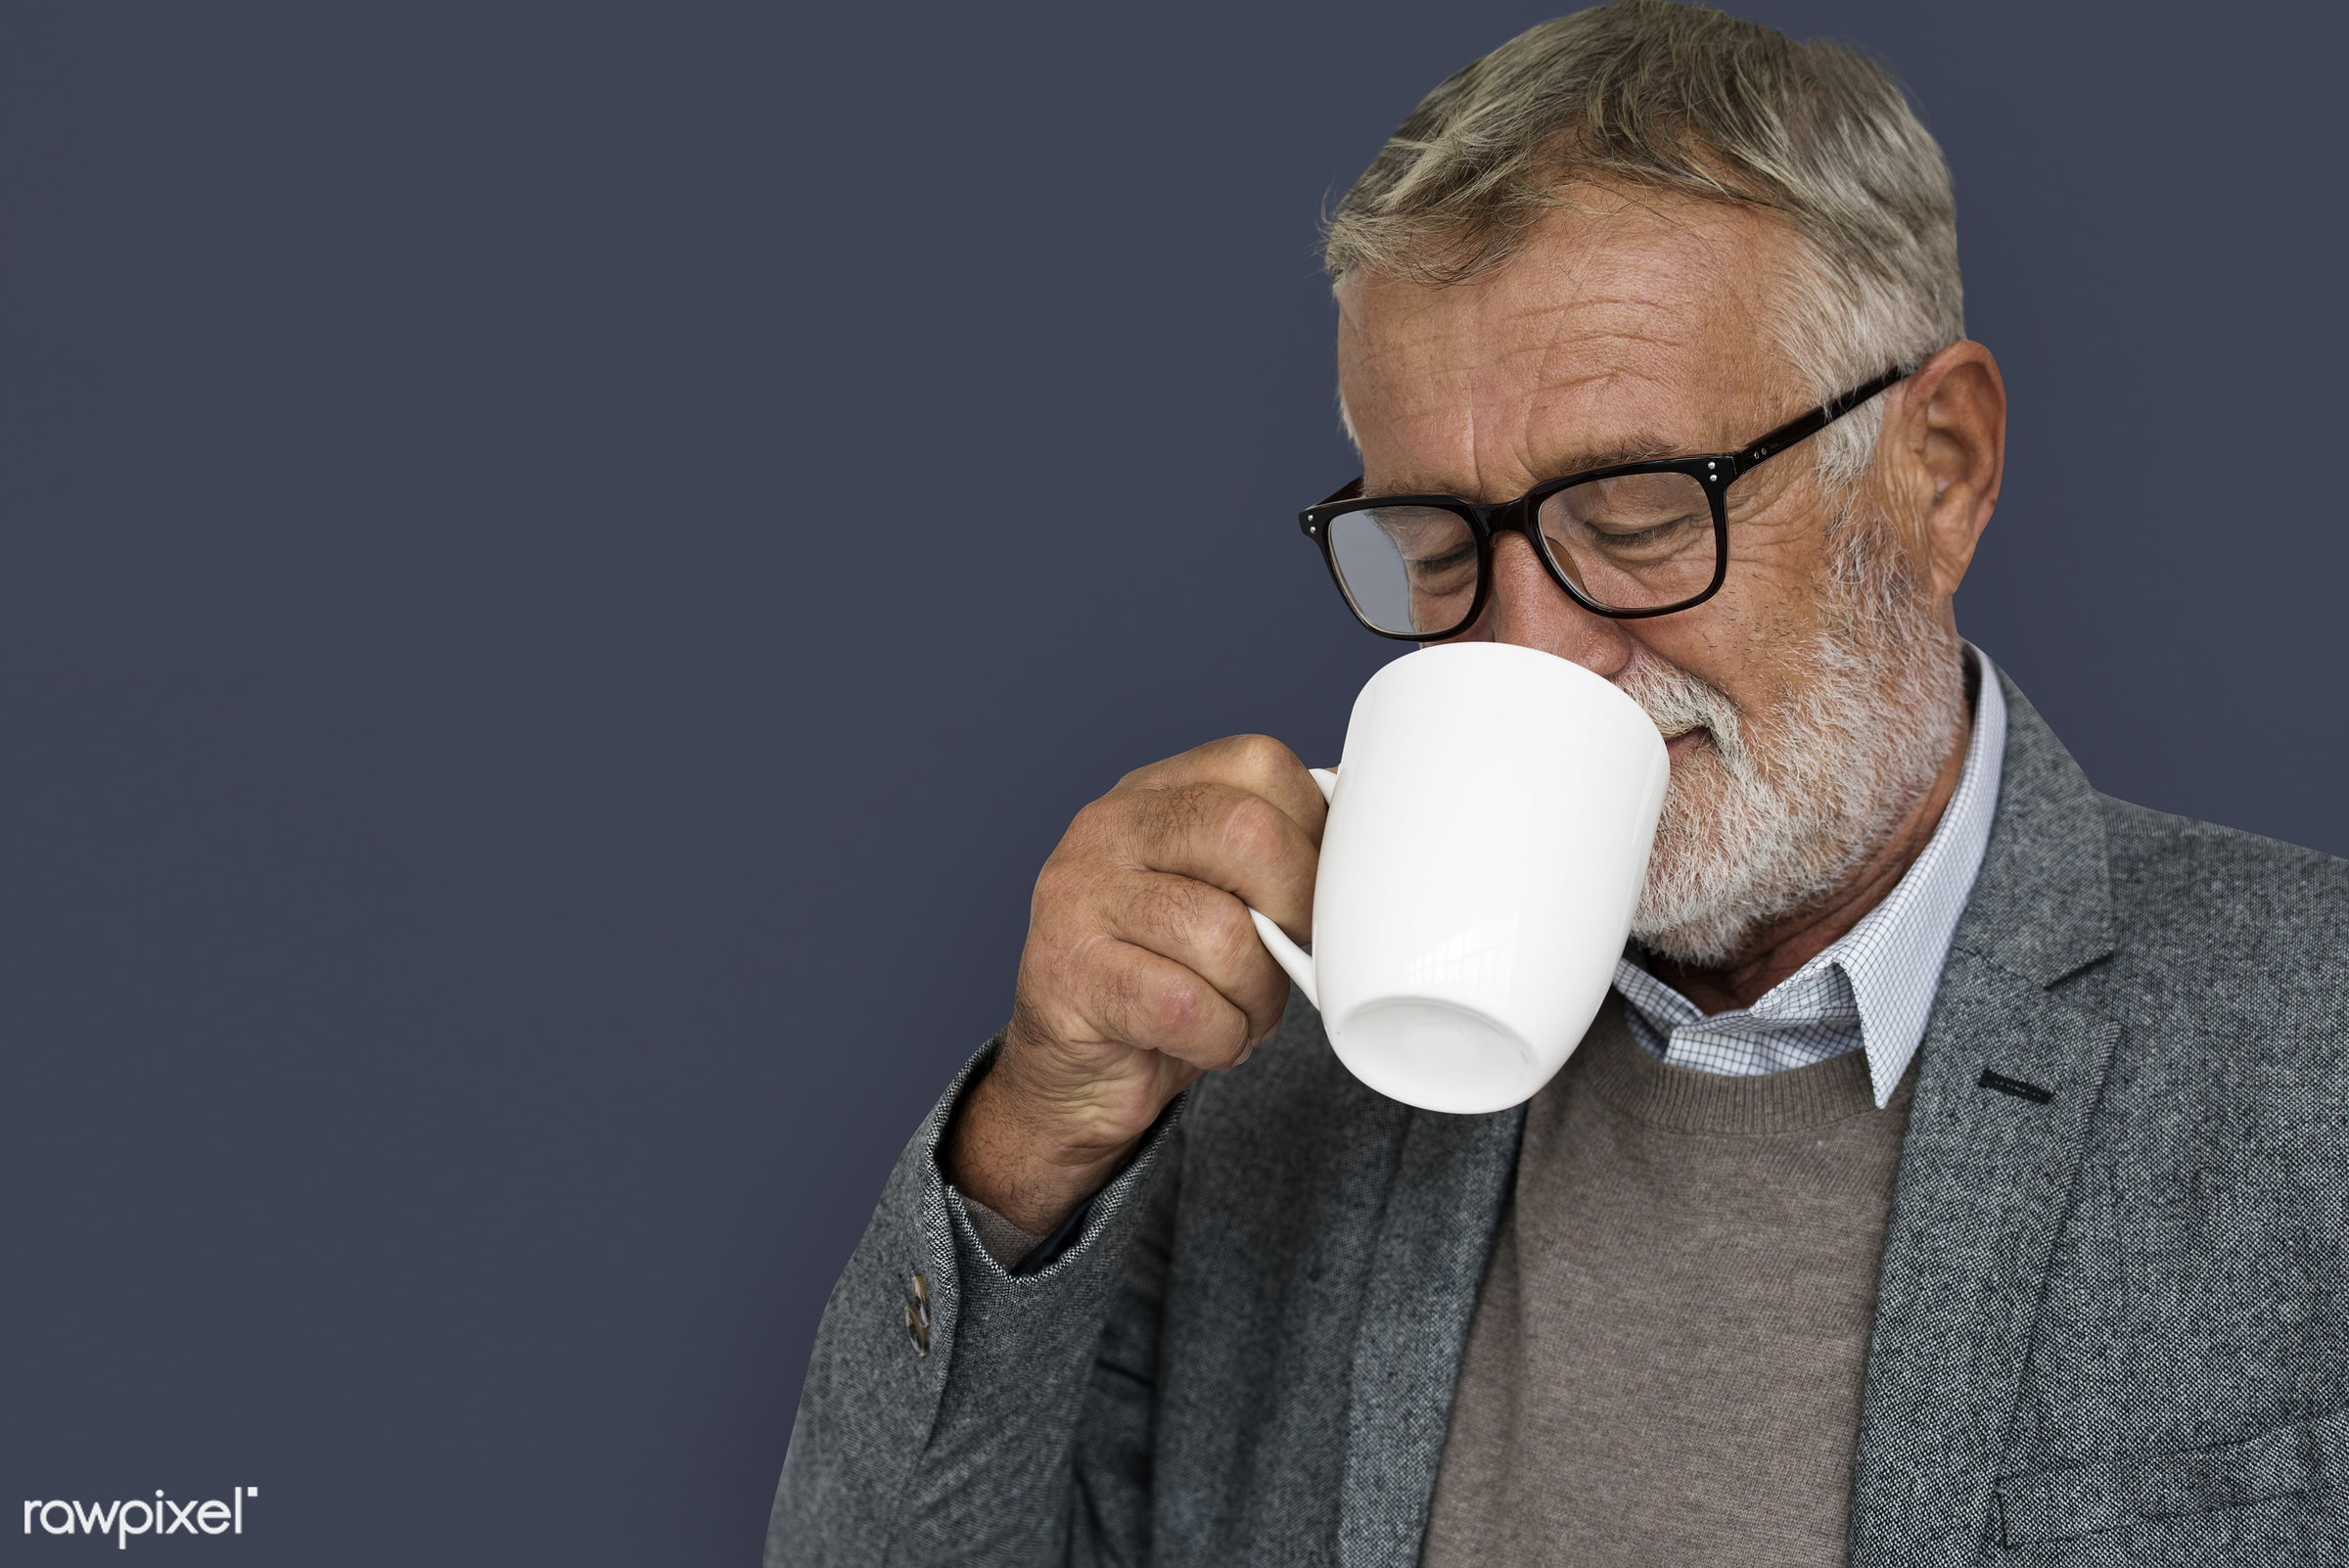 expression, studio, old, person, drinking, drinking coffee, people, caucasian, pose, smile, positive, smiling, man, formal...